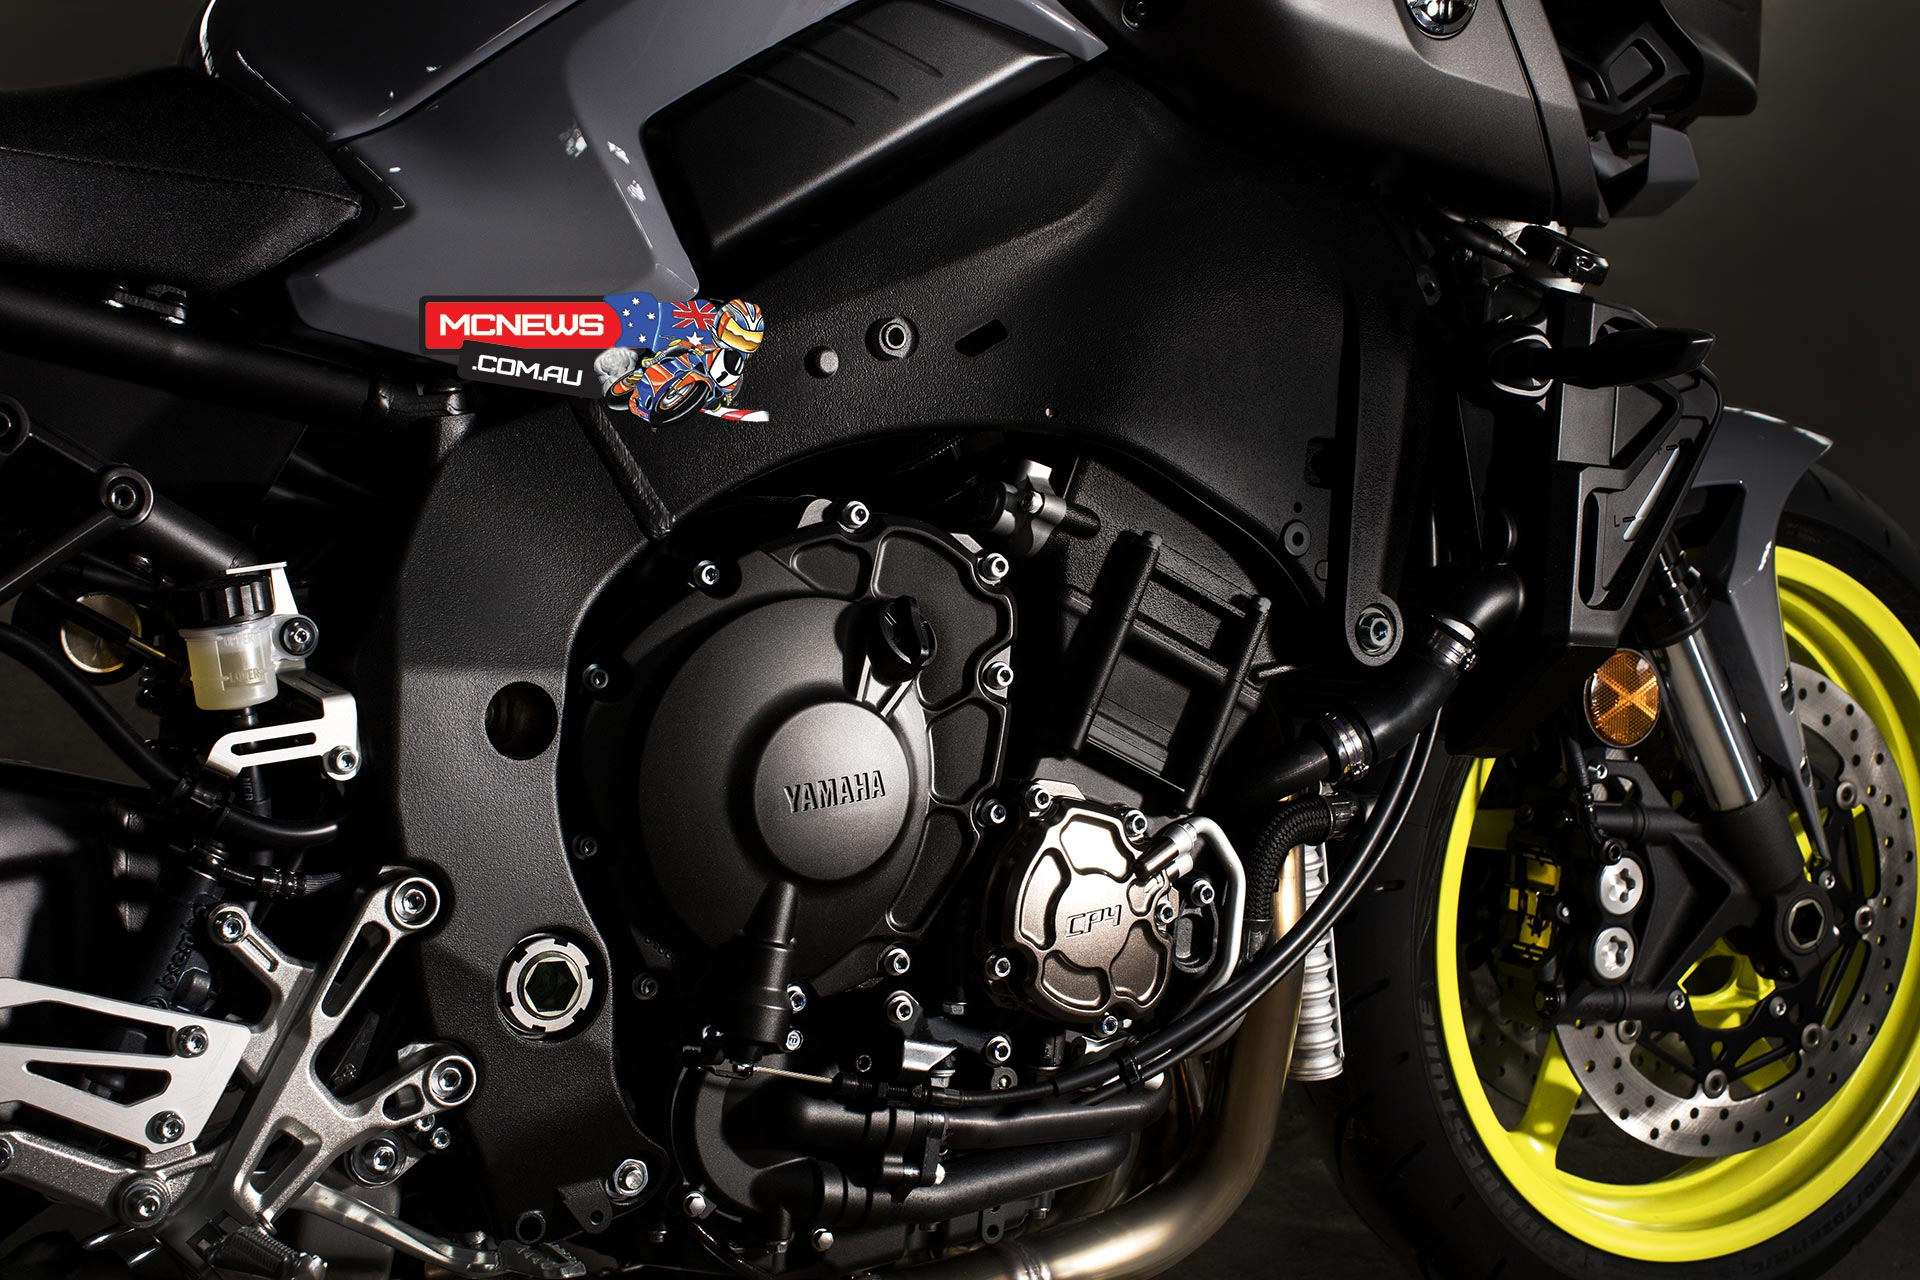 Engine of Yamaha MT 10